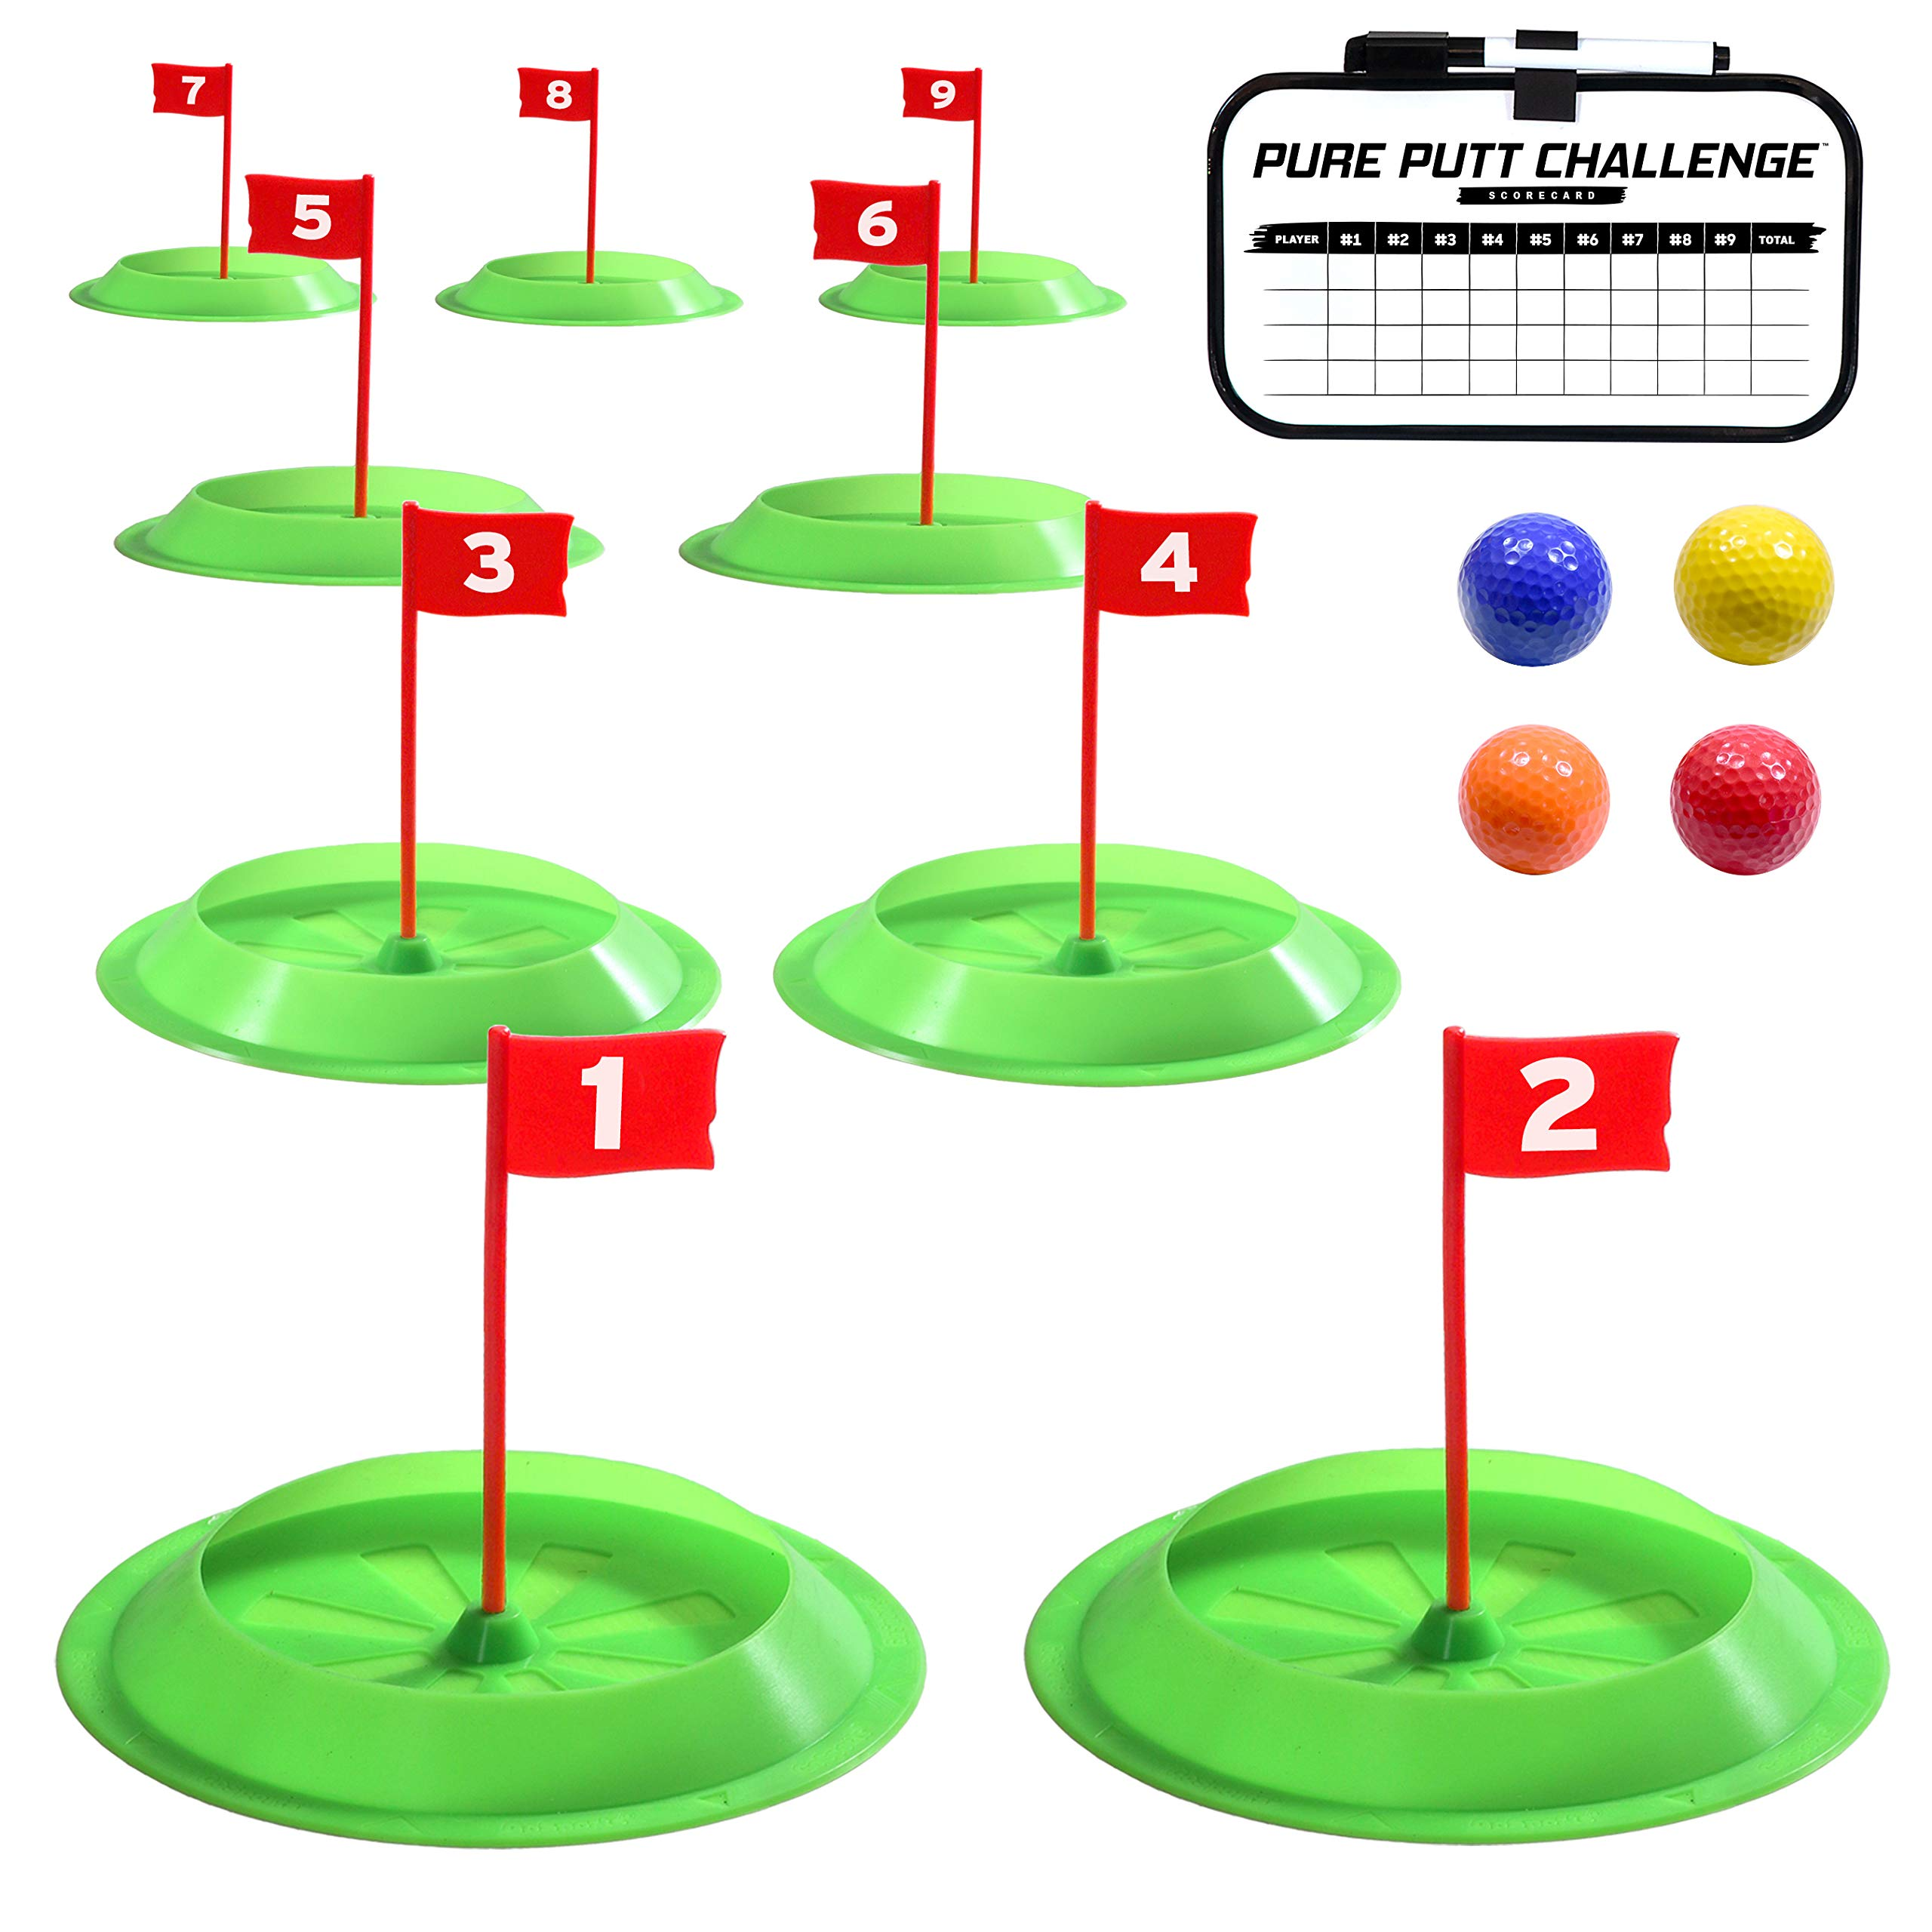 GoSports Pure Putt Challenge Mini Golf Game - Build Your Own Course at Home, The Office or On The Green - Includes 9 Holes, 4 Balls, Dry-Erase Scorecard & Rules